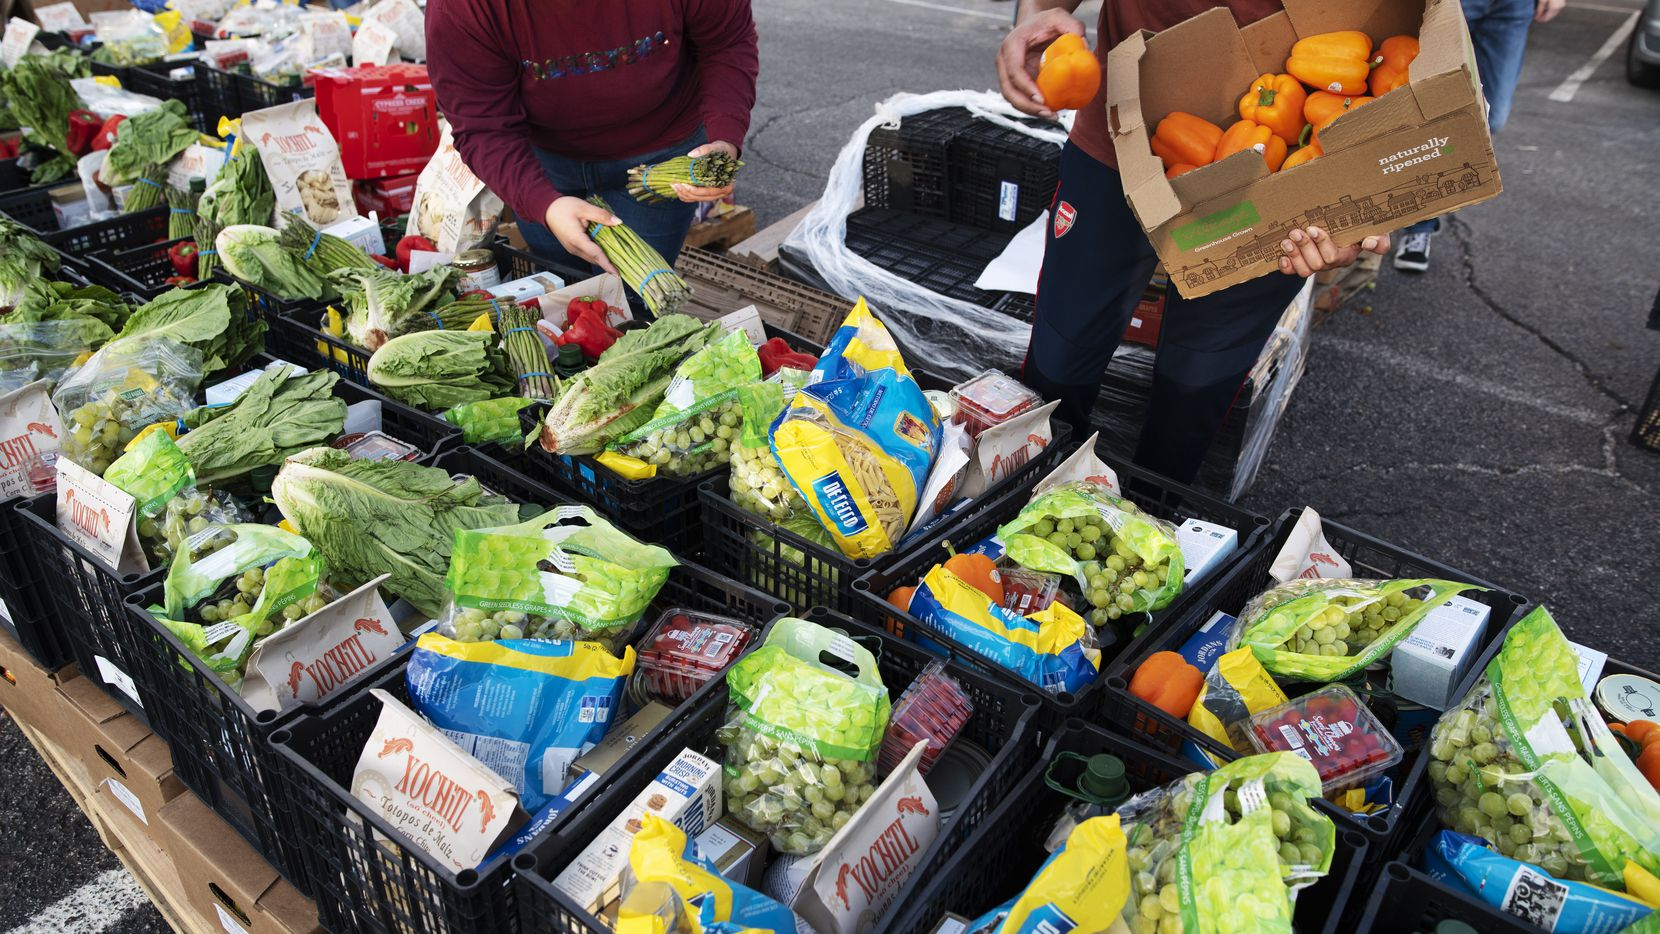 Volunteers helped unload and pack food supplies for families during a drive-through event hosted by Harvest Project Food Rescue and the North Texas Dream Team last July outside of East Grand Preparatory in Dallas.